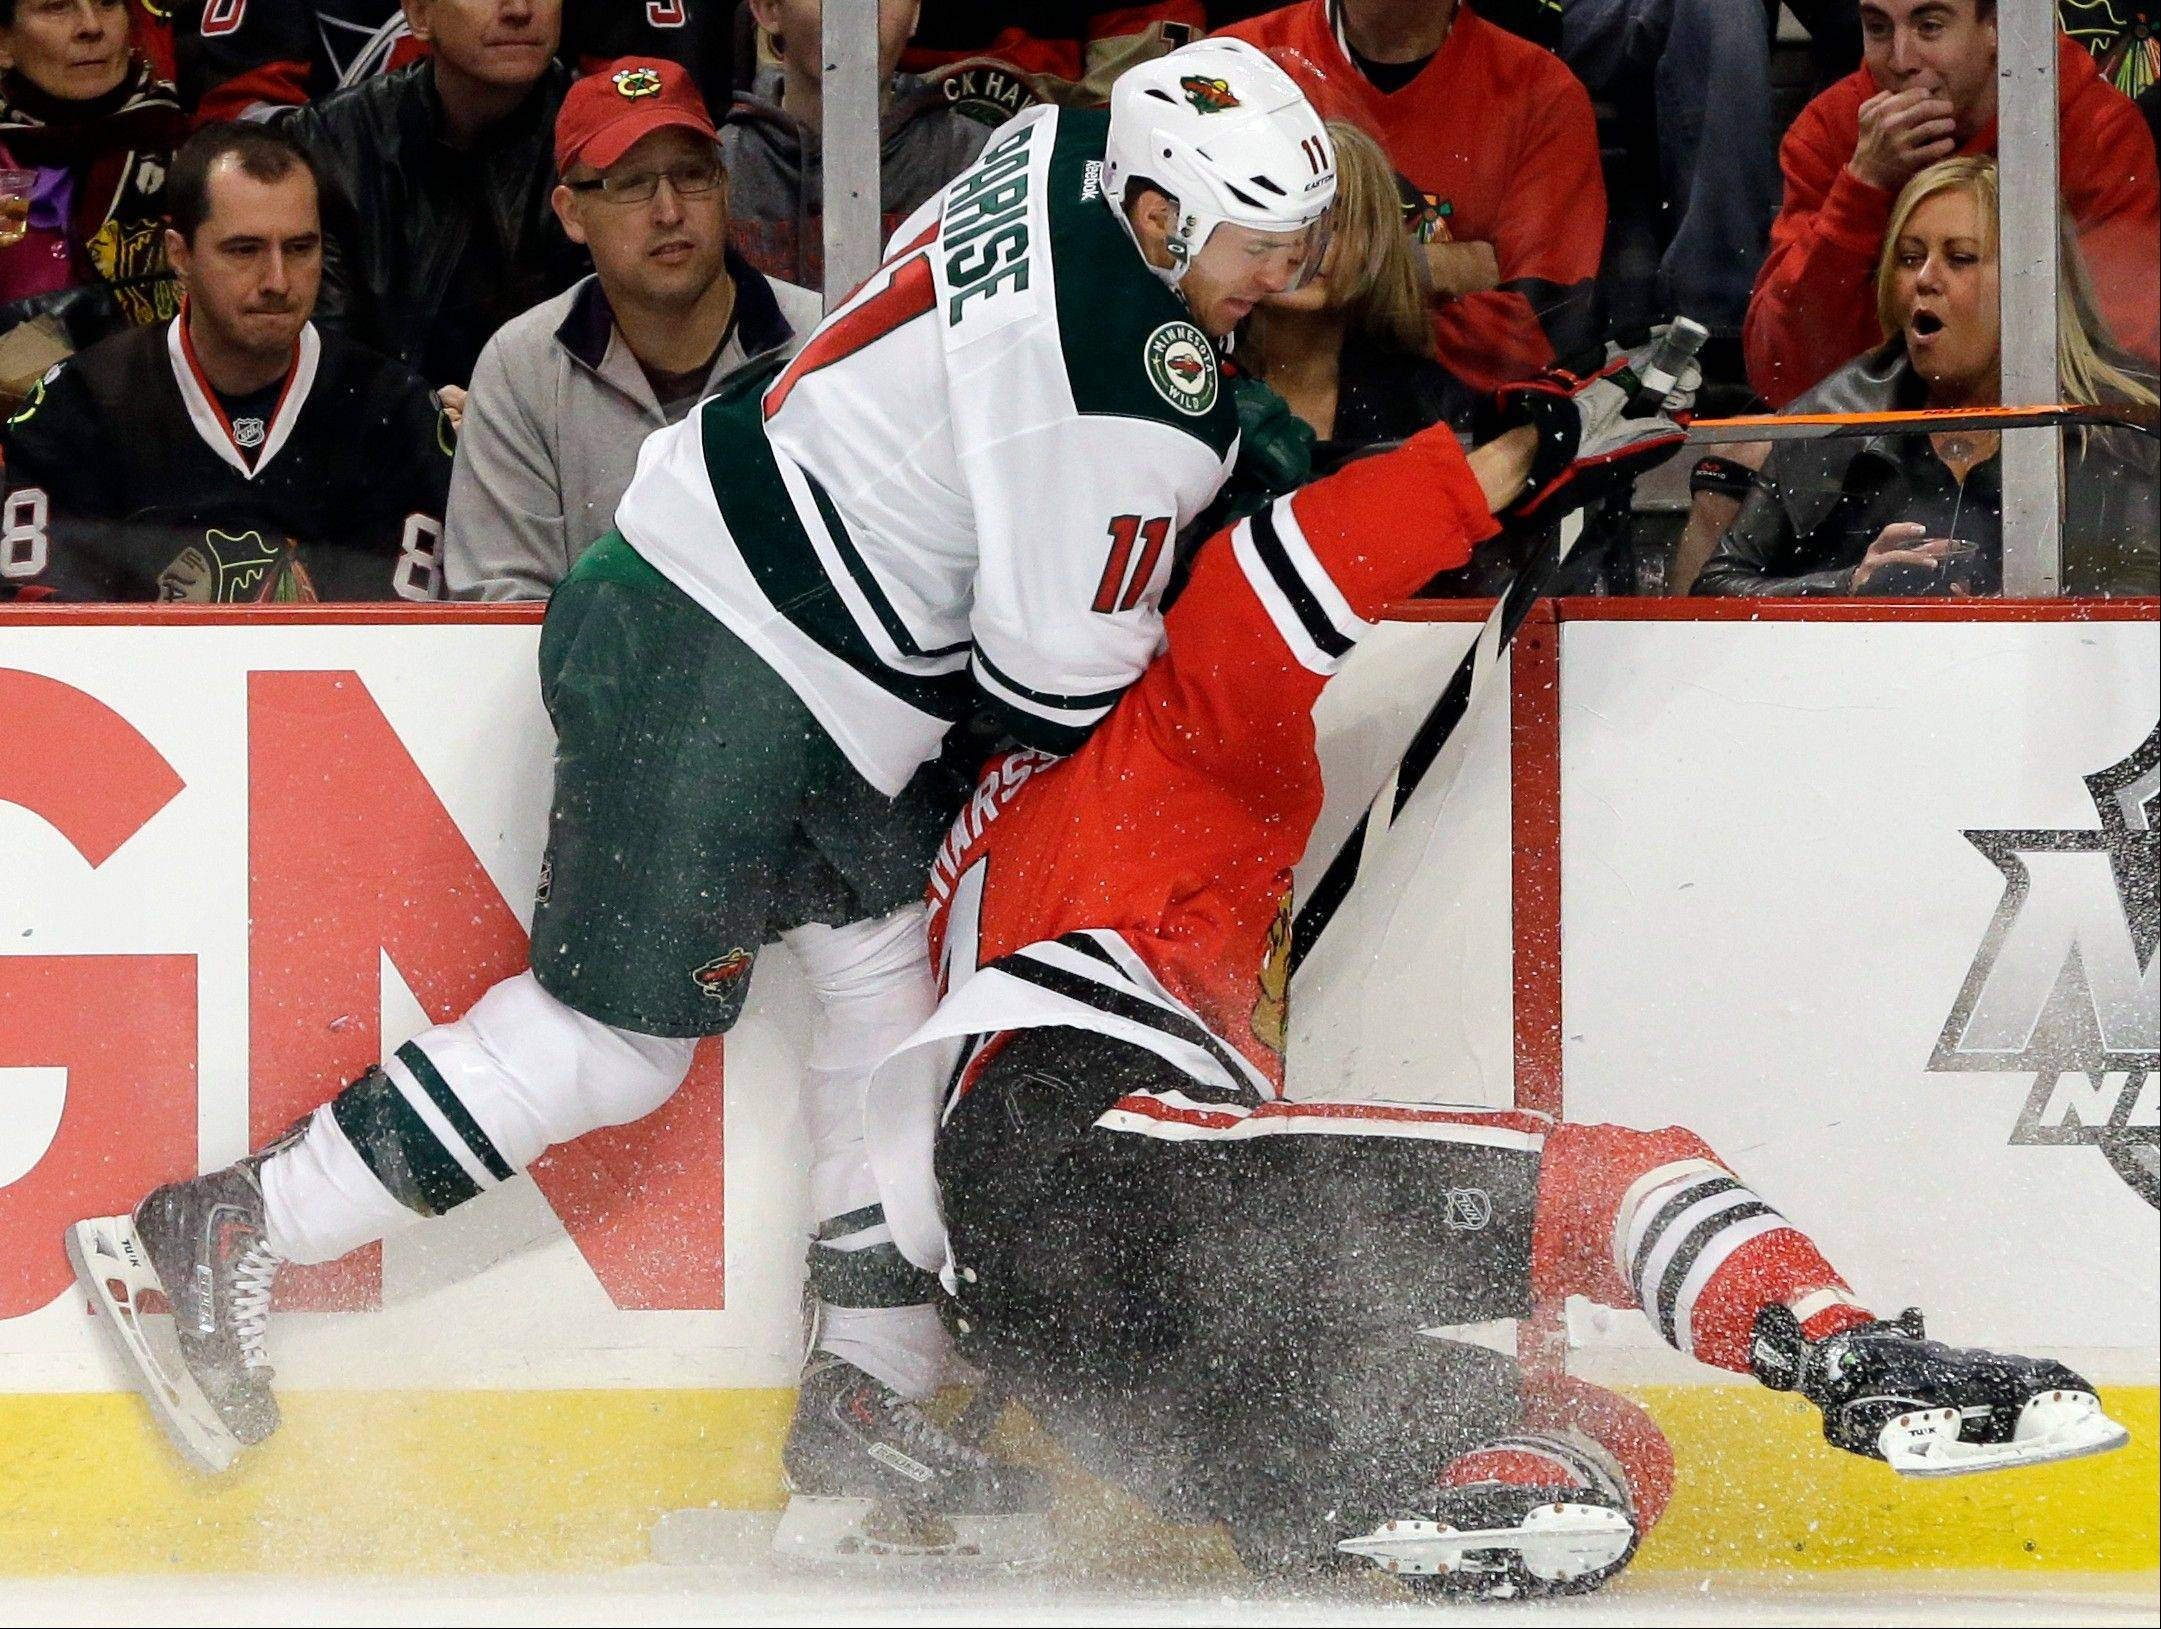 The Blackhawks� Niklas Hjalmarsson (4), right, is checked by Minnesota Wild�s Zach Parise (11) during the first period.